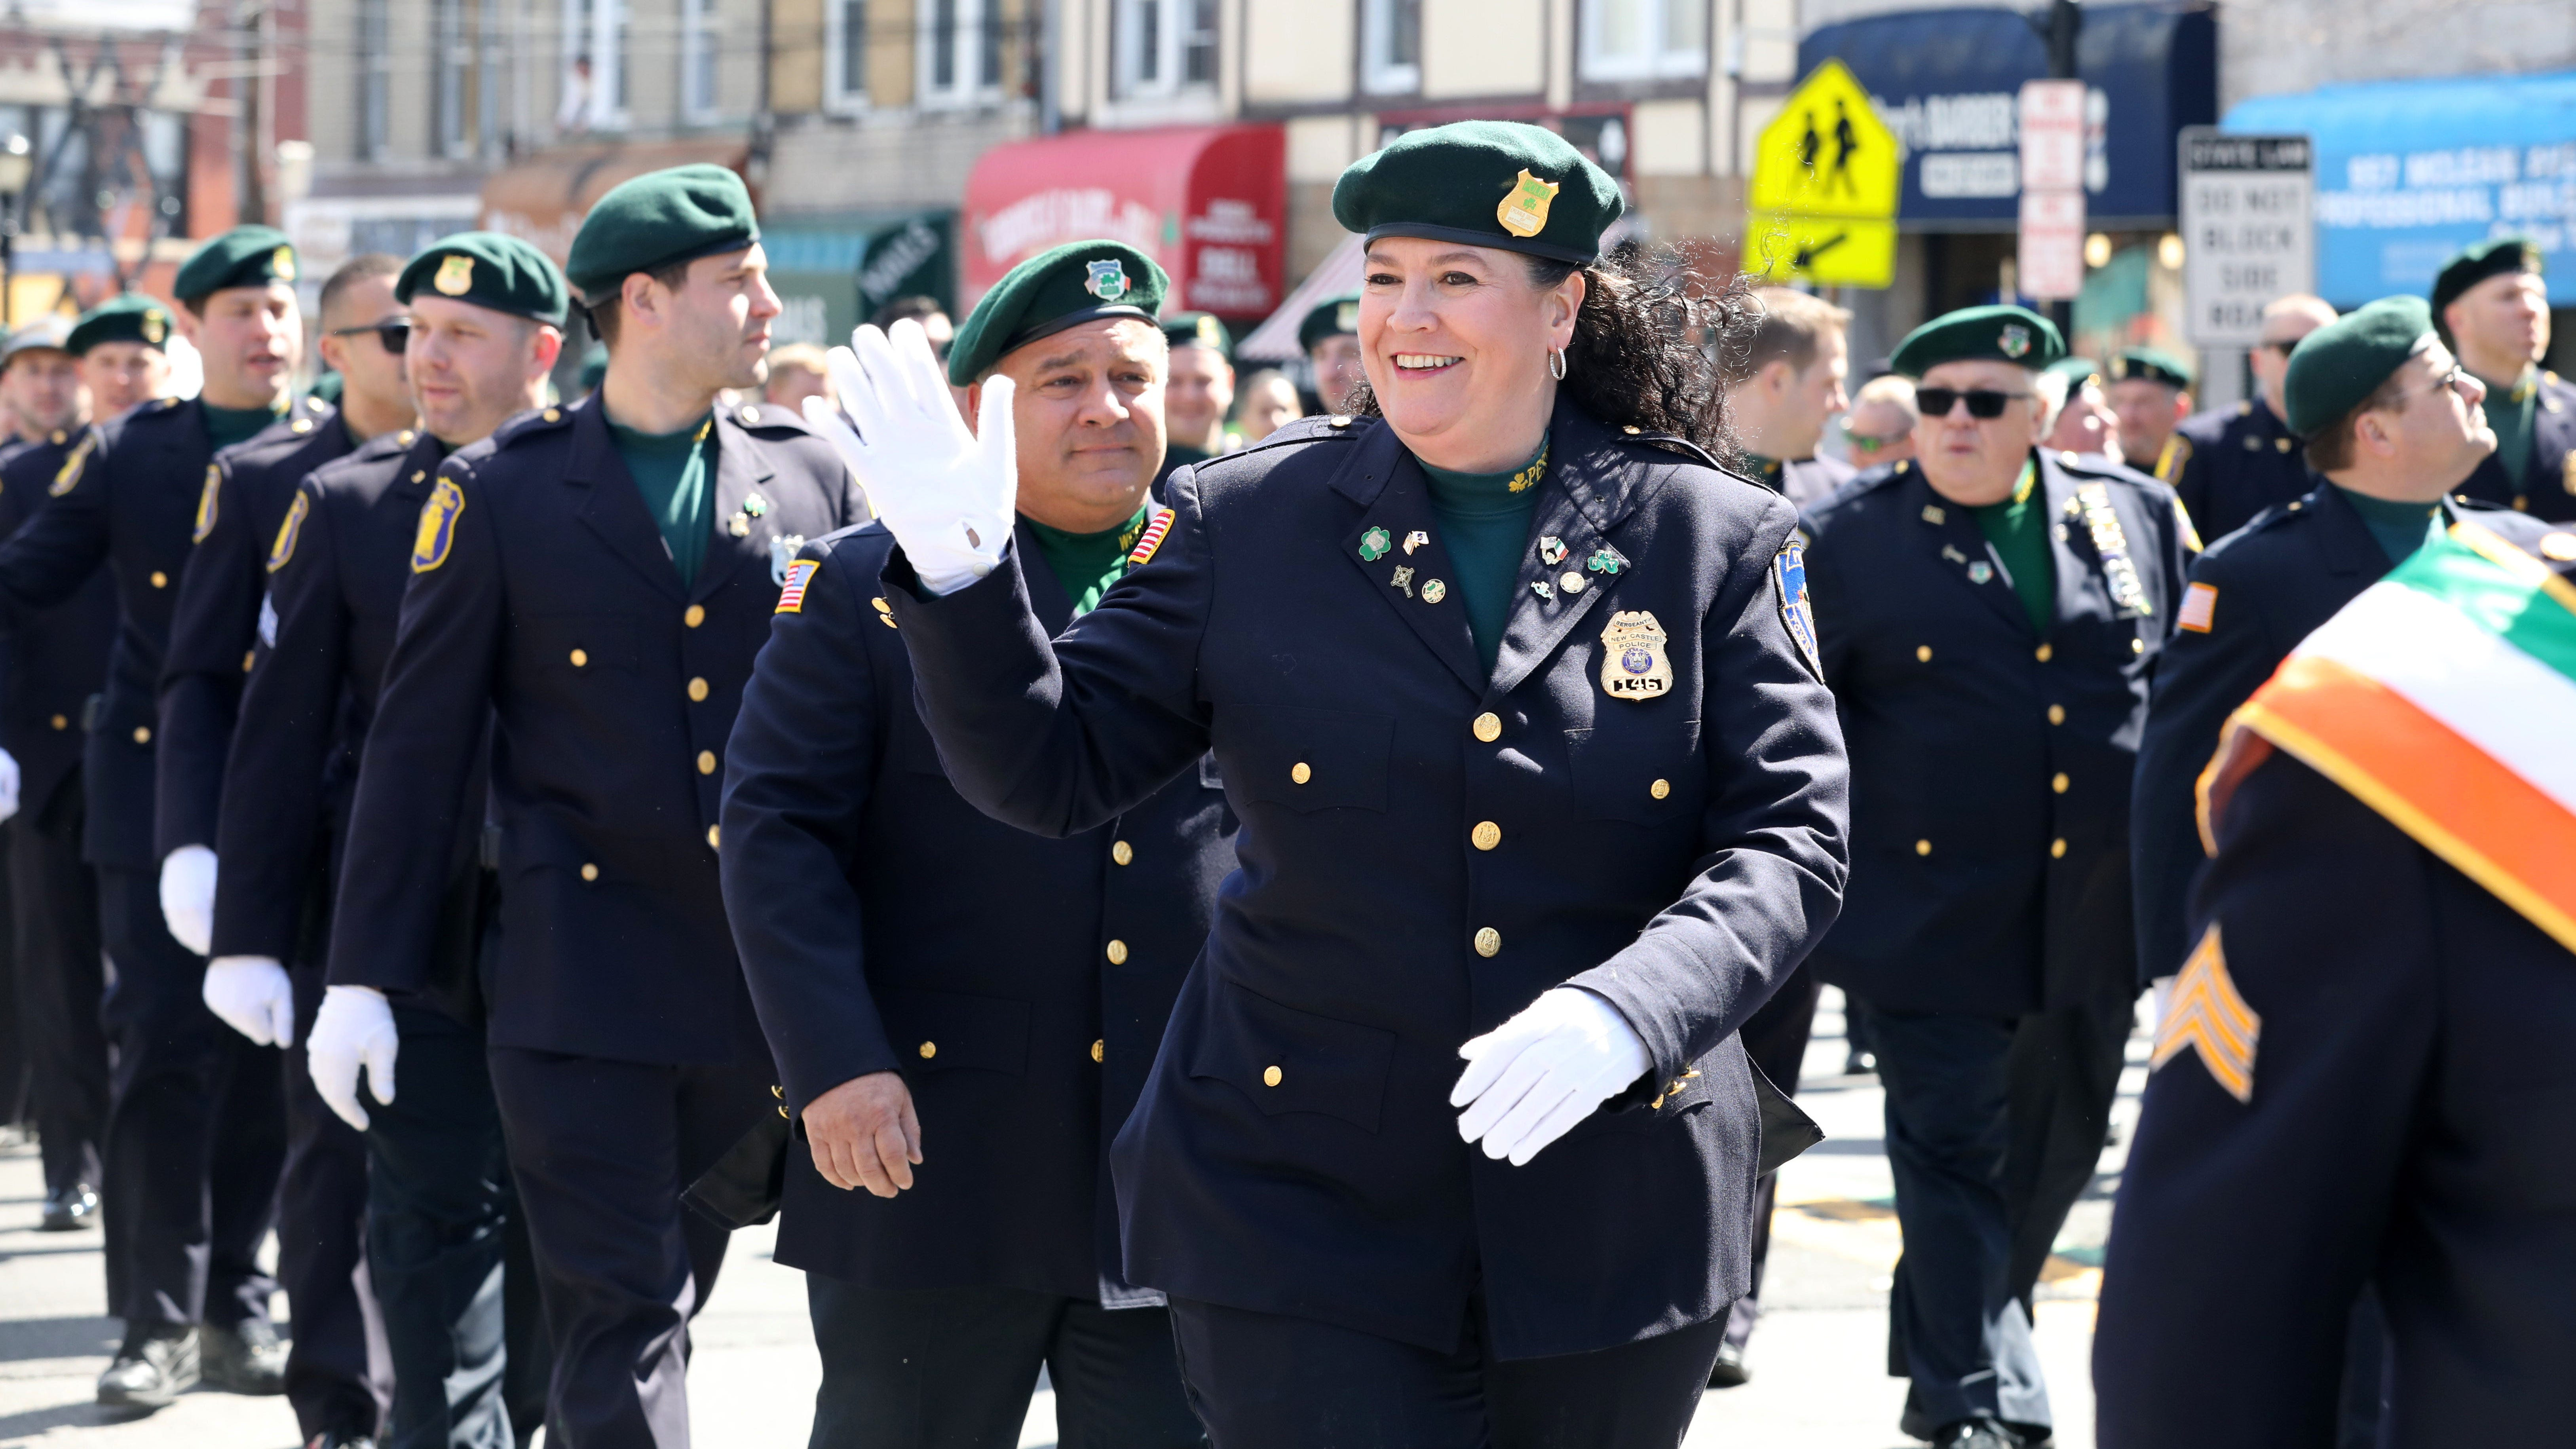 Video: Yonkers St. Patrick's Day Parade 2019